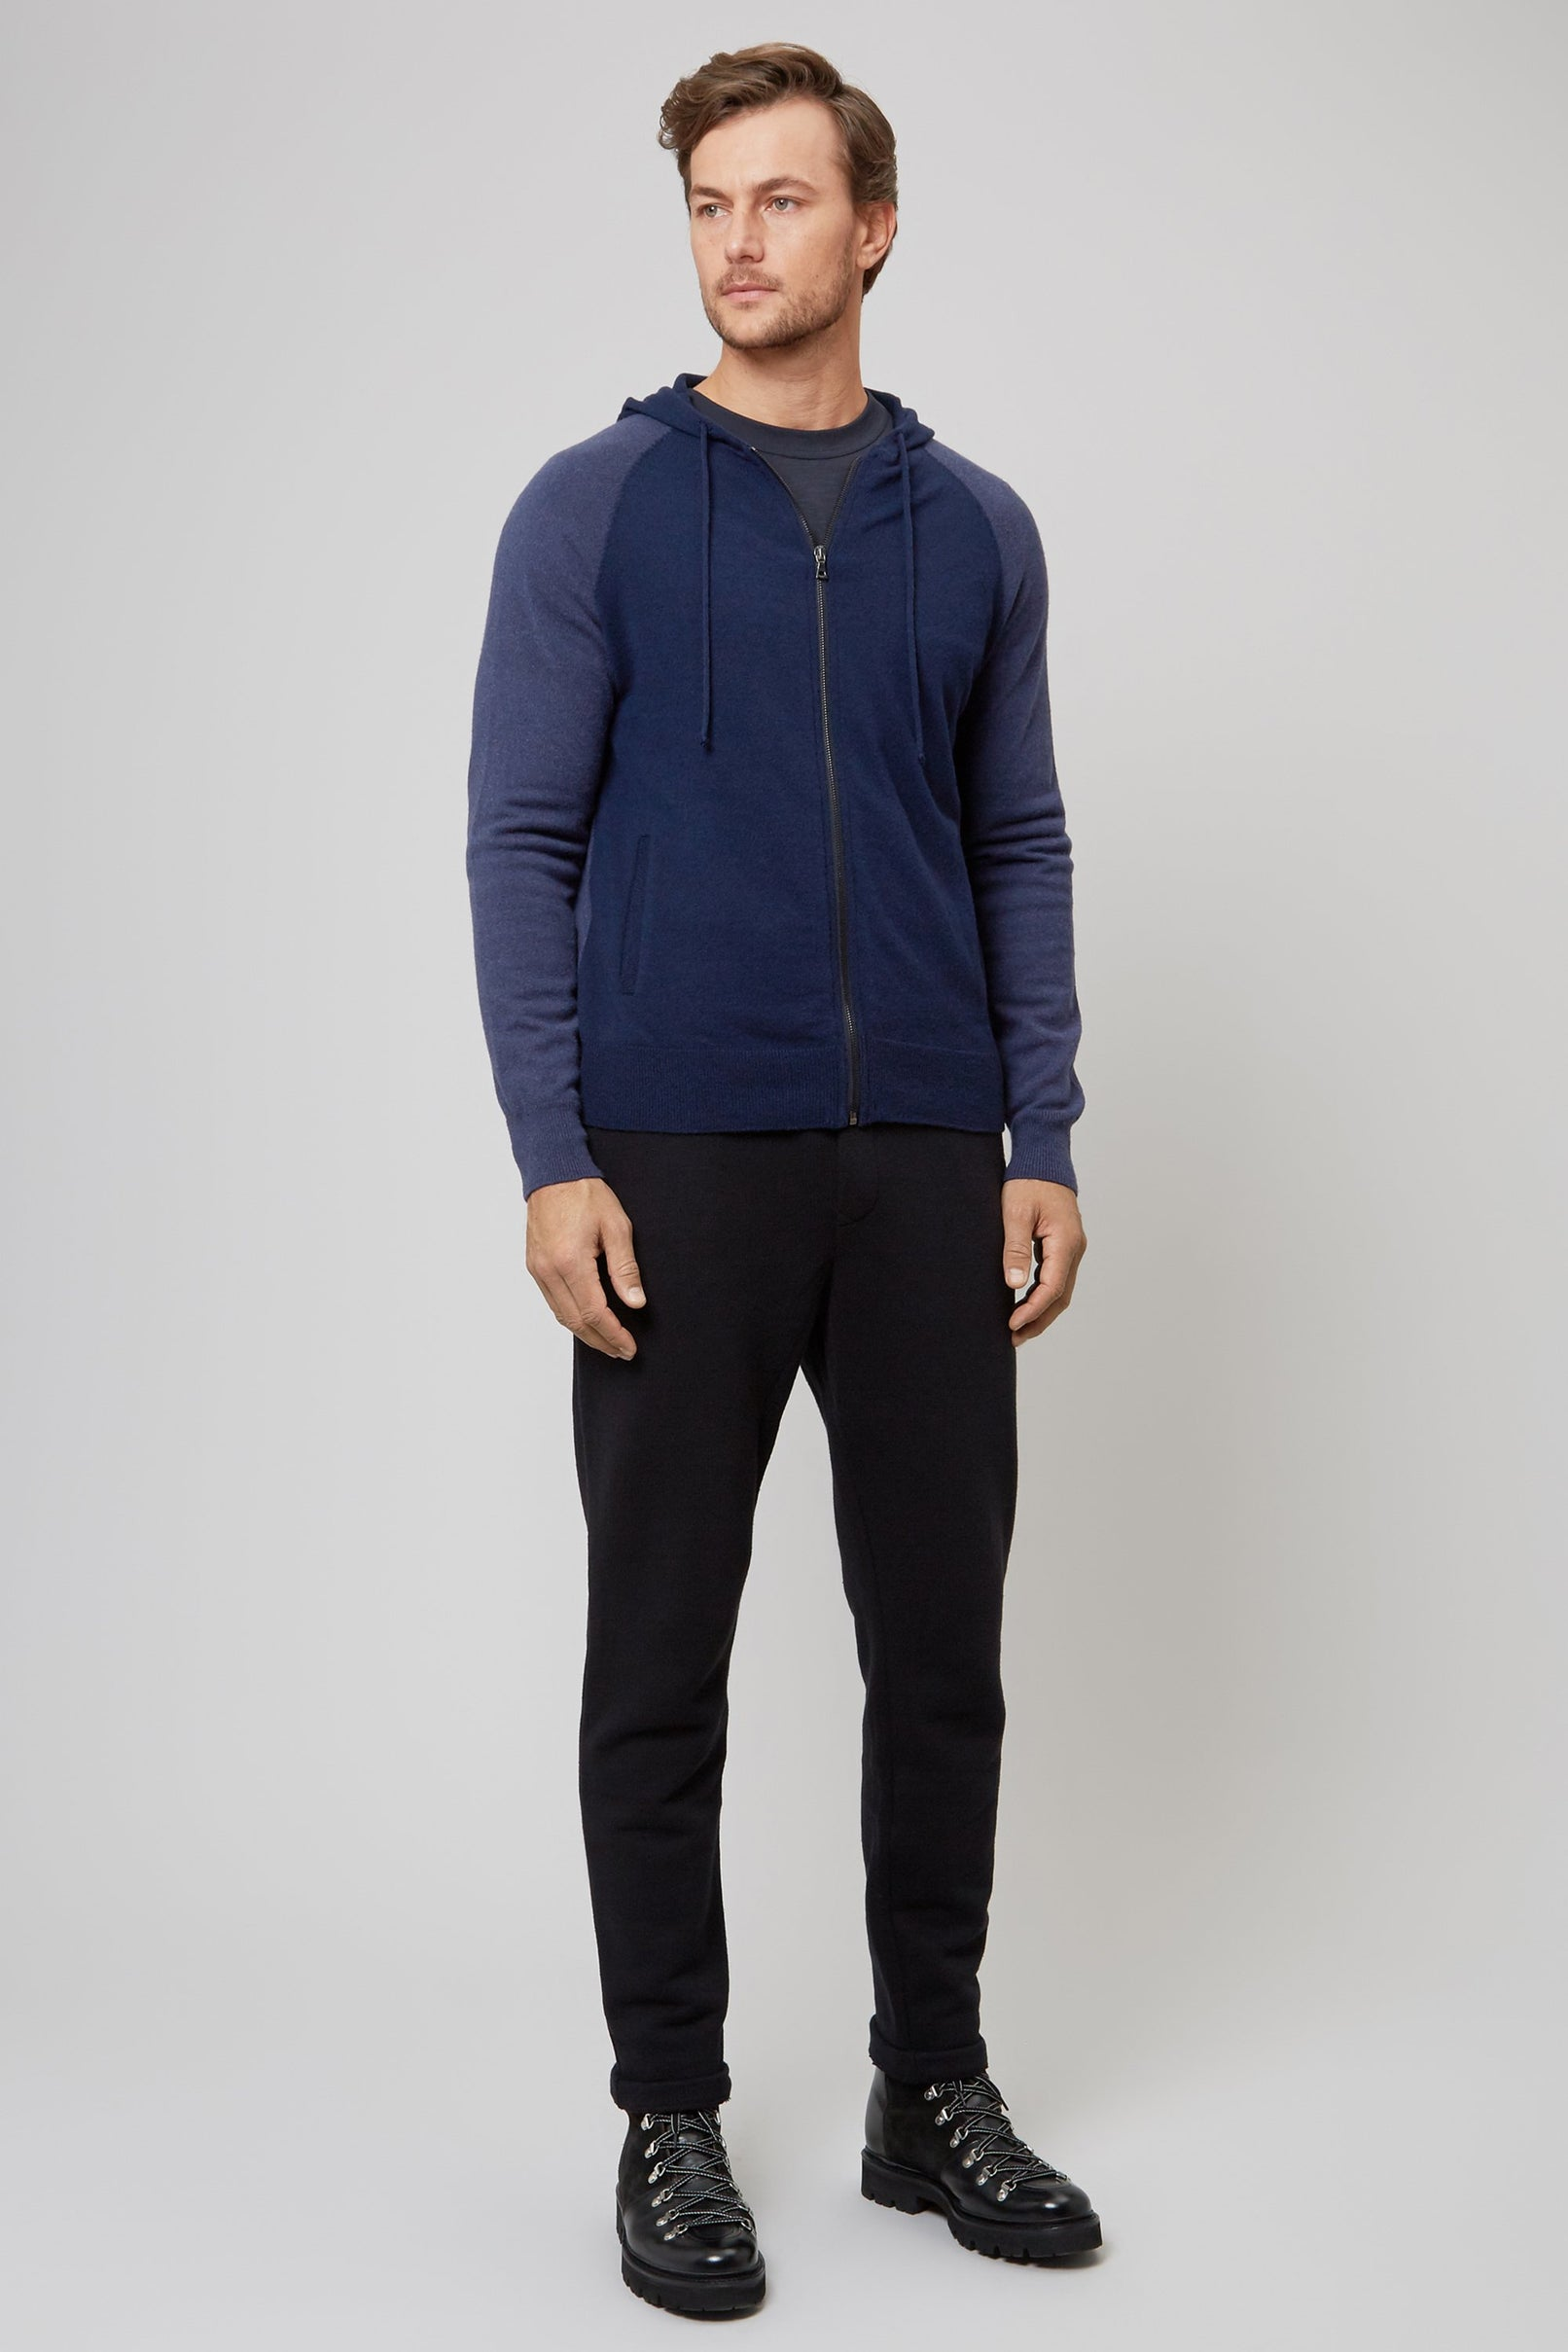 NAVY WOOL & CASHMERE SEAMLESS HOODED ZIP SWEATER